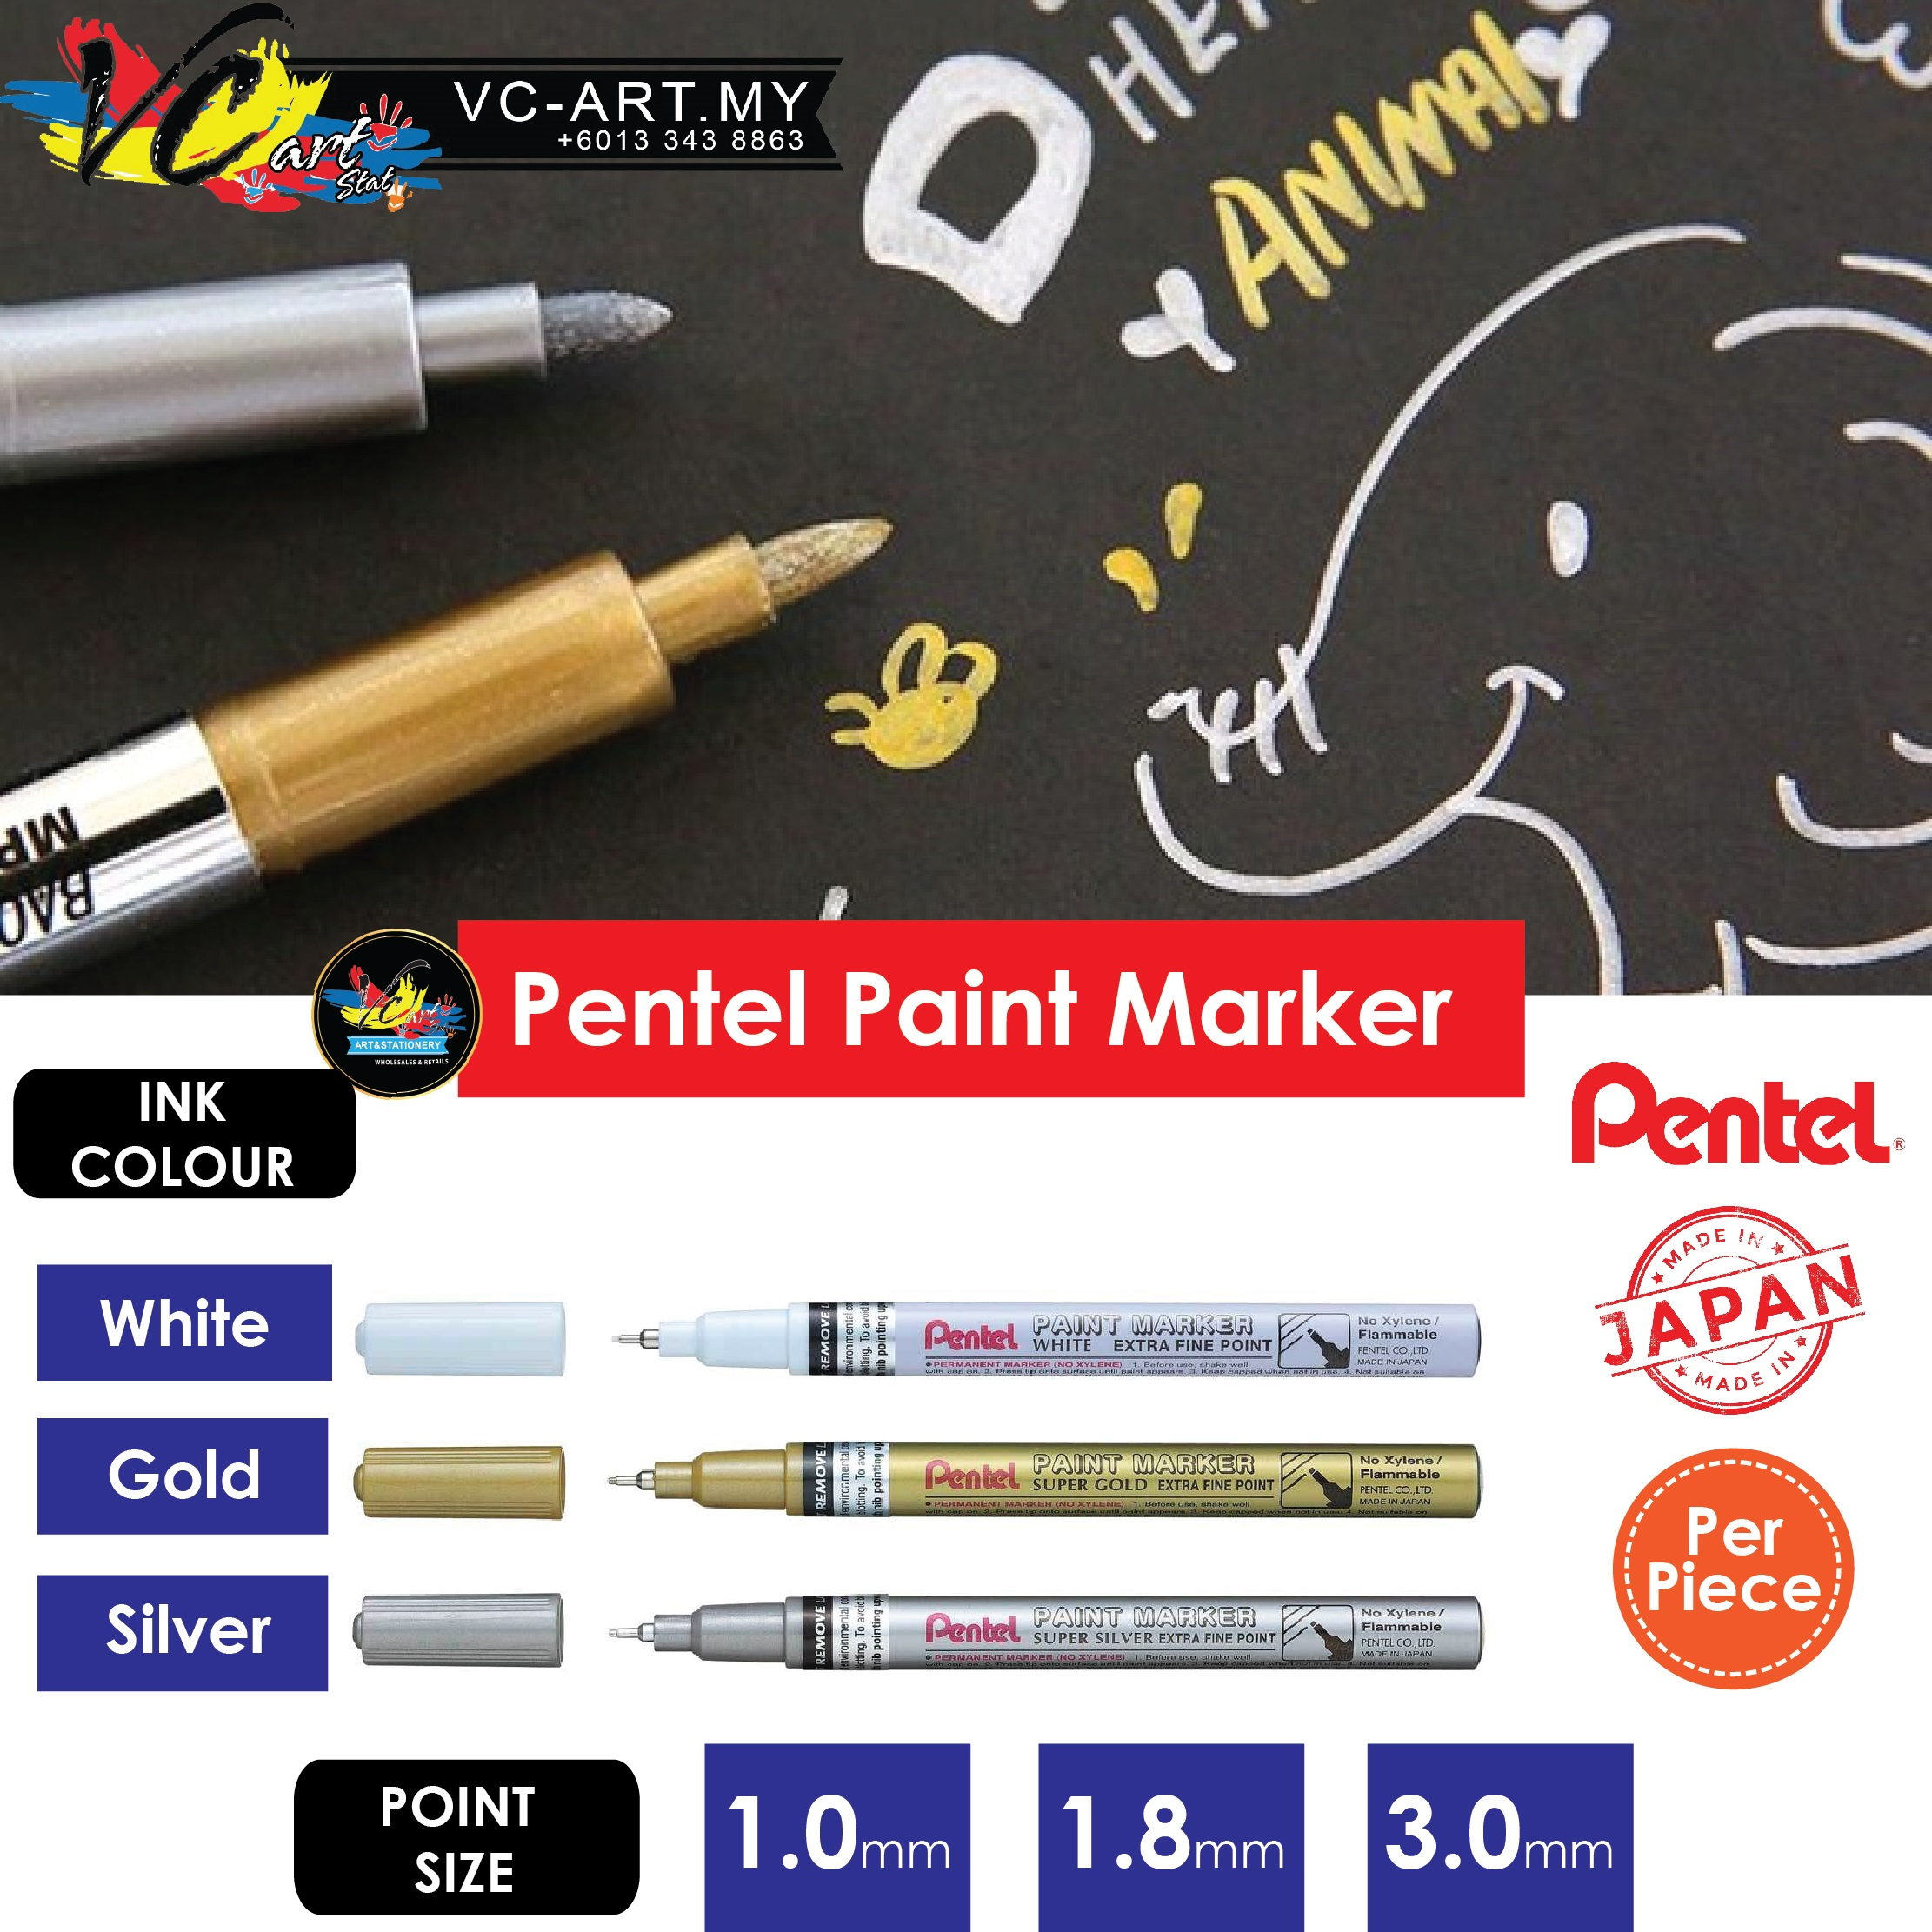 6431dbcf654b5 VC-ART MY Pentel Paint Marker 1 (end 8 25 2021 12 00 AM)